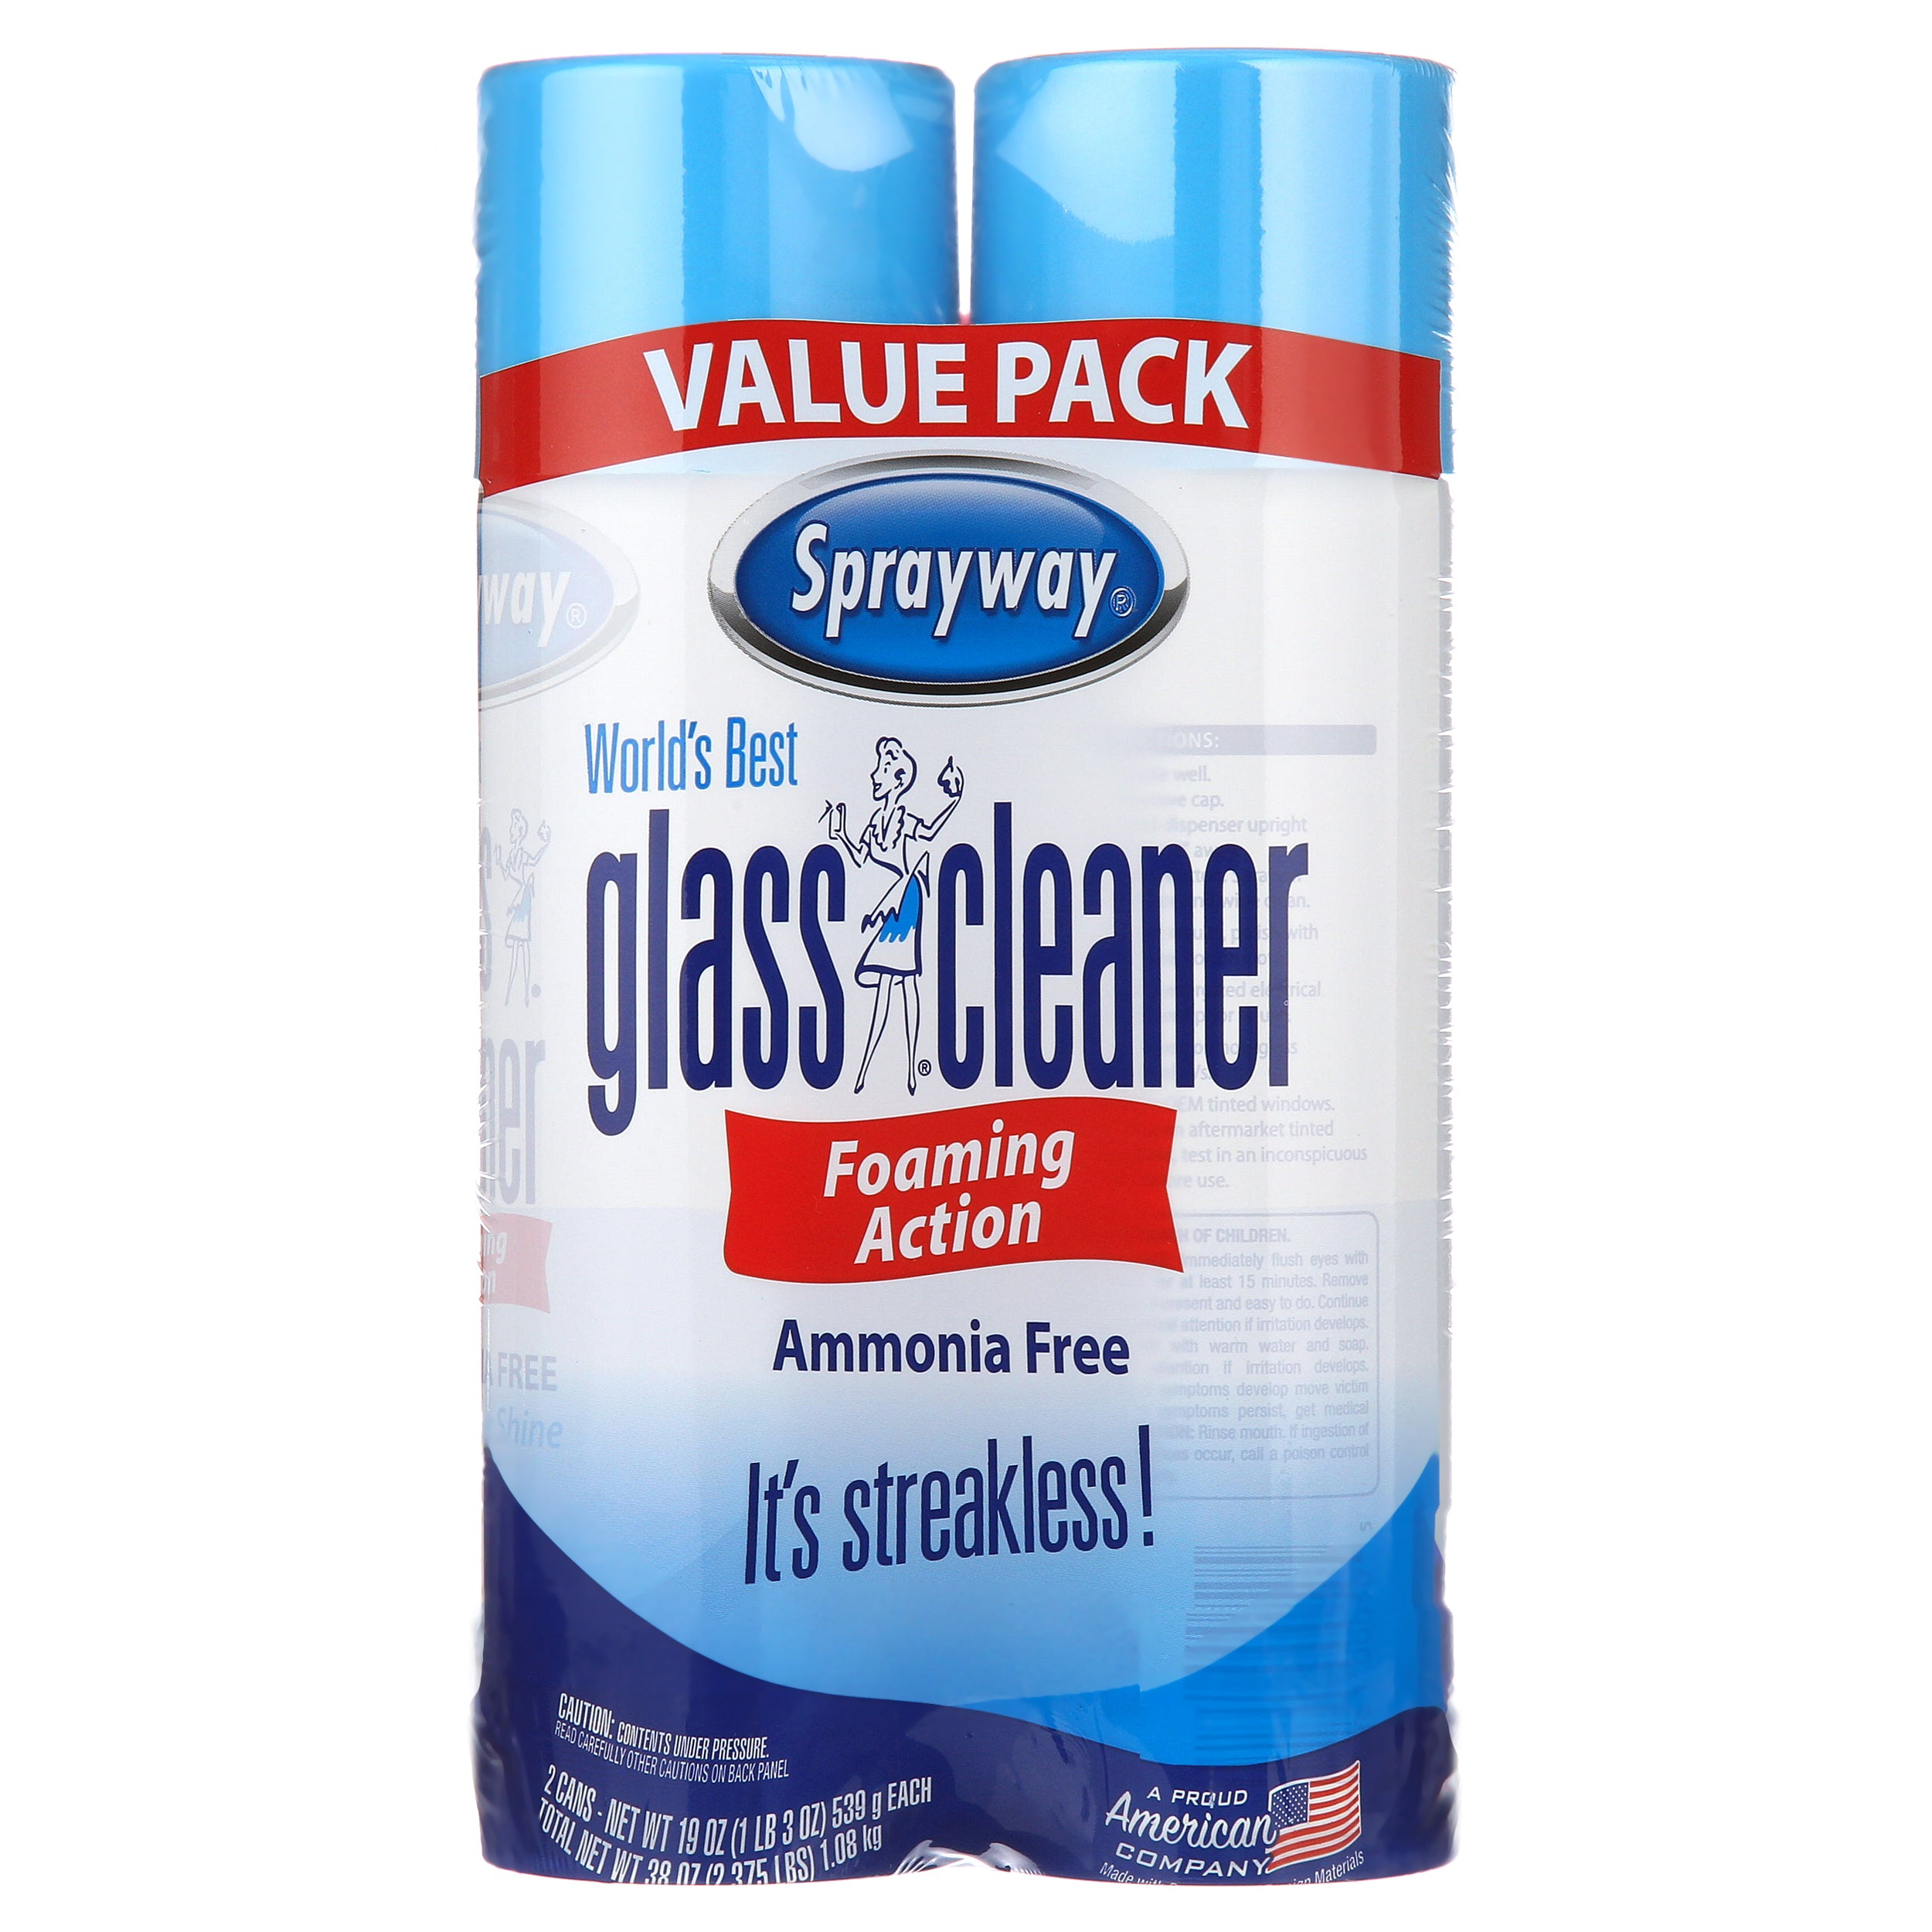 Sprayway World's Best Glass Cleaner, Value Pack, 2x19 OZ - FLJ CORPORATIONS